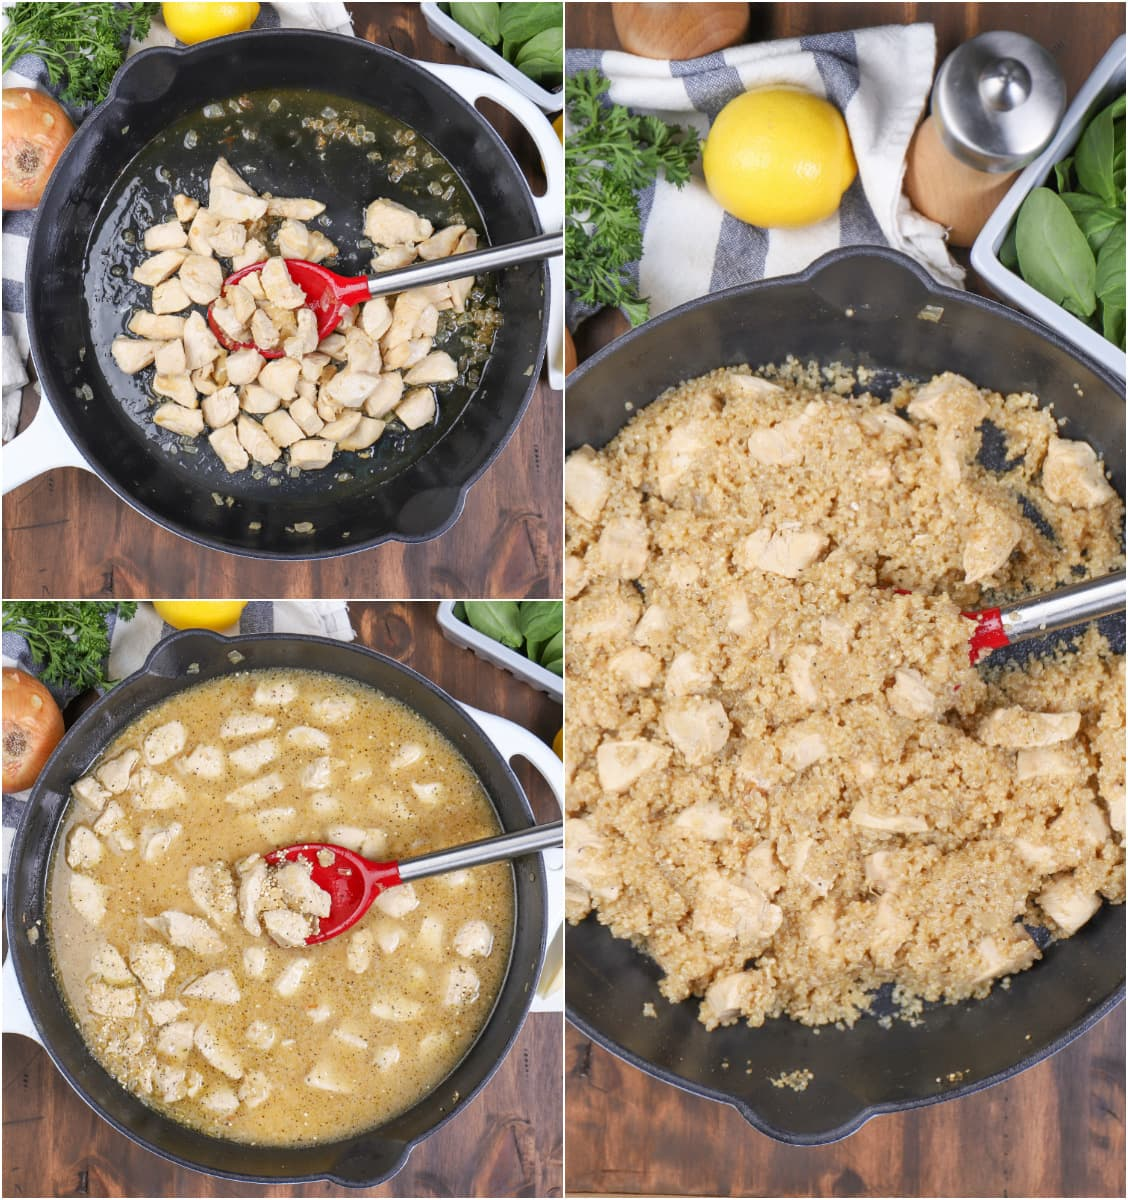 Steps for Making Chicken Quinoa Skillet